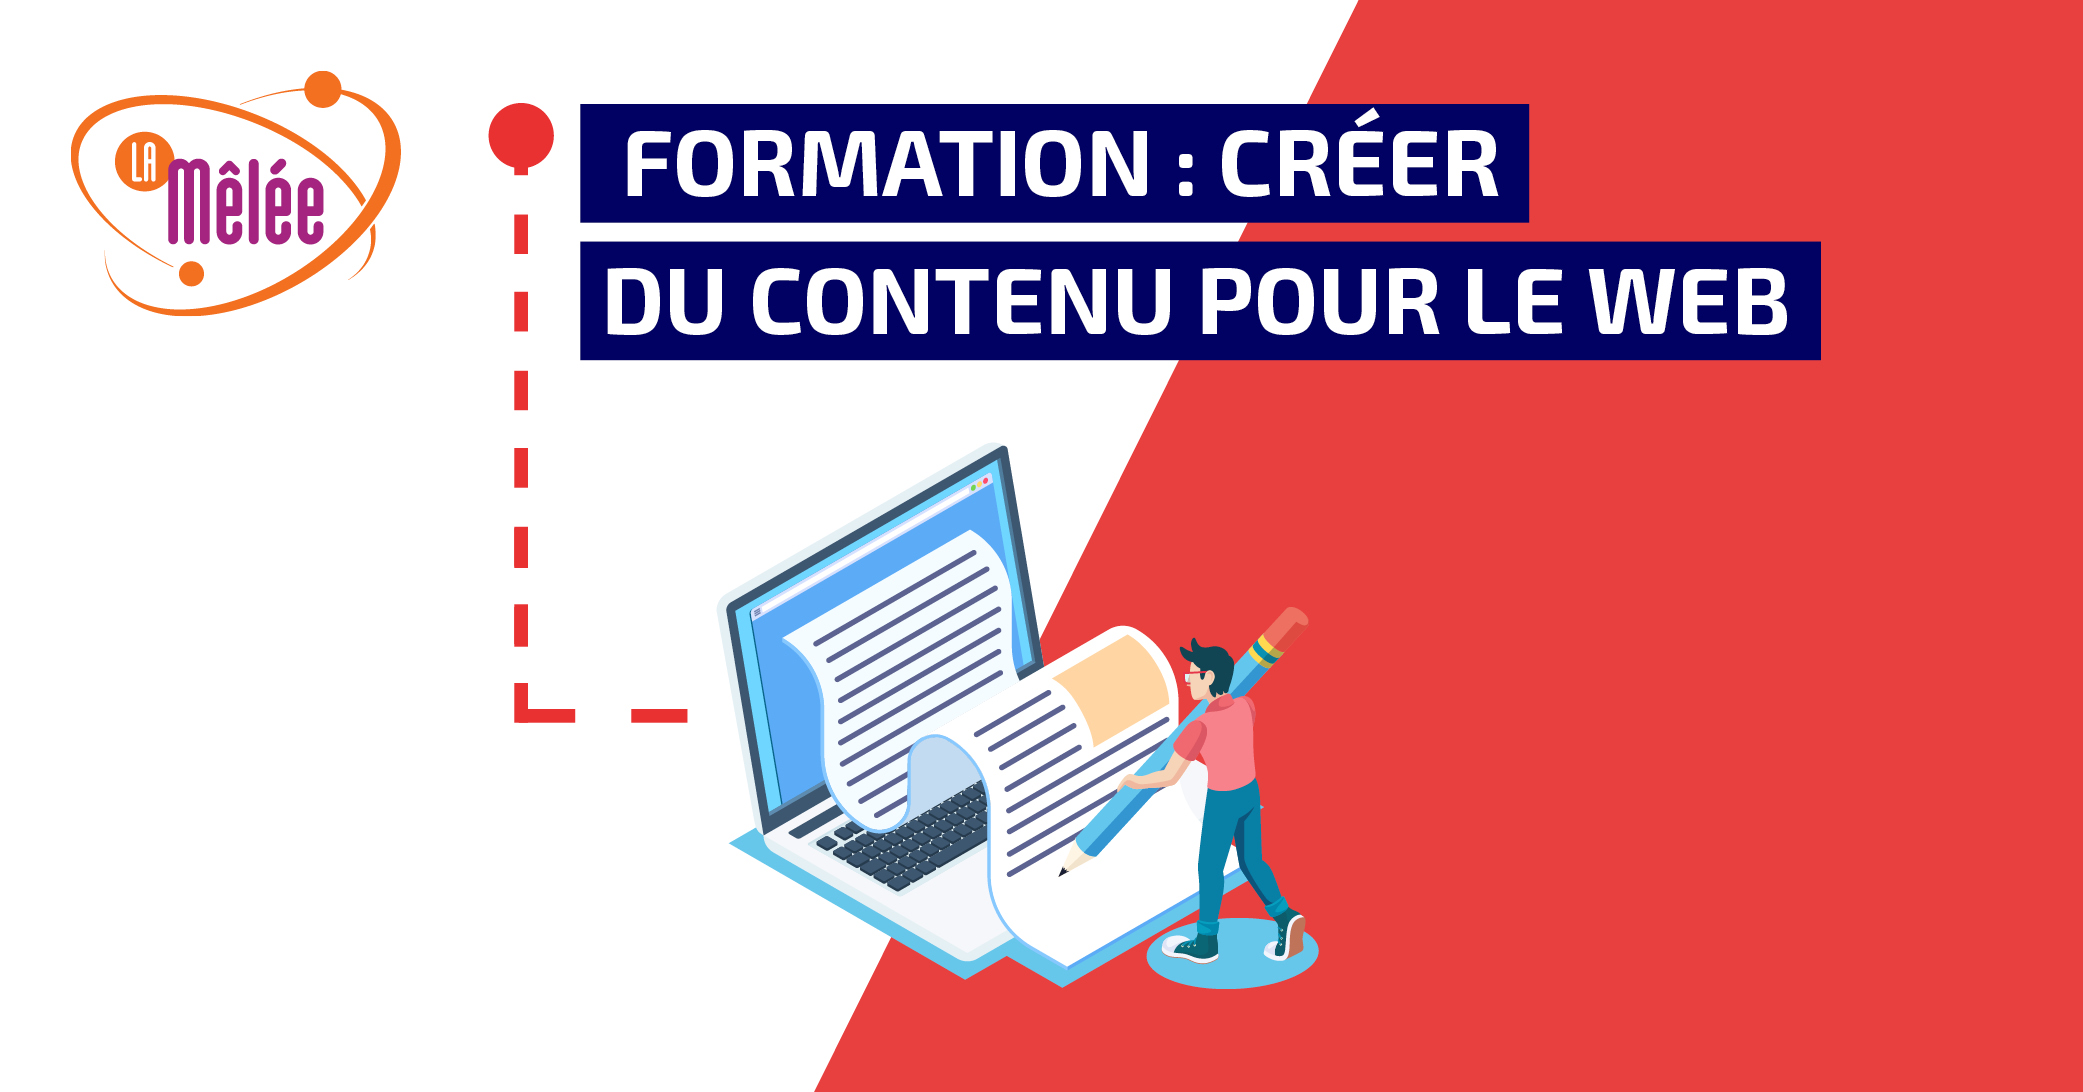 1570535928-formationcreerducontenupourleweb.jpg